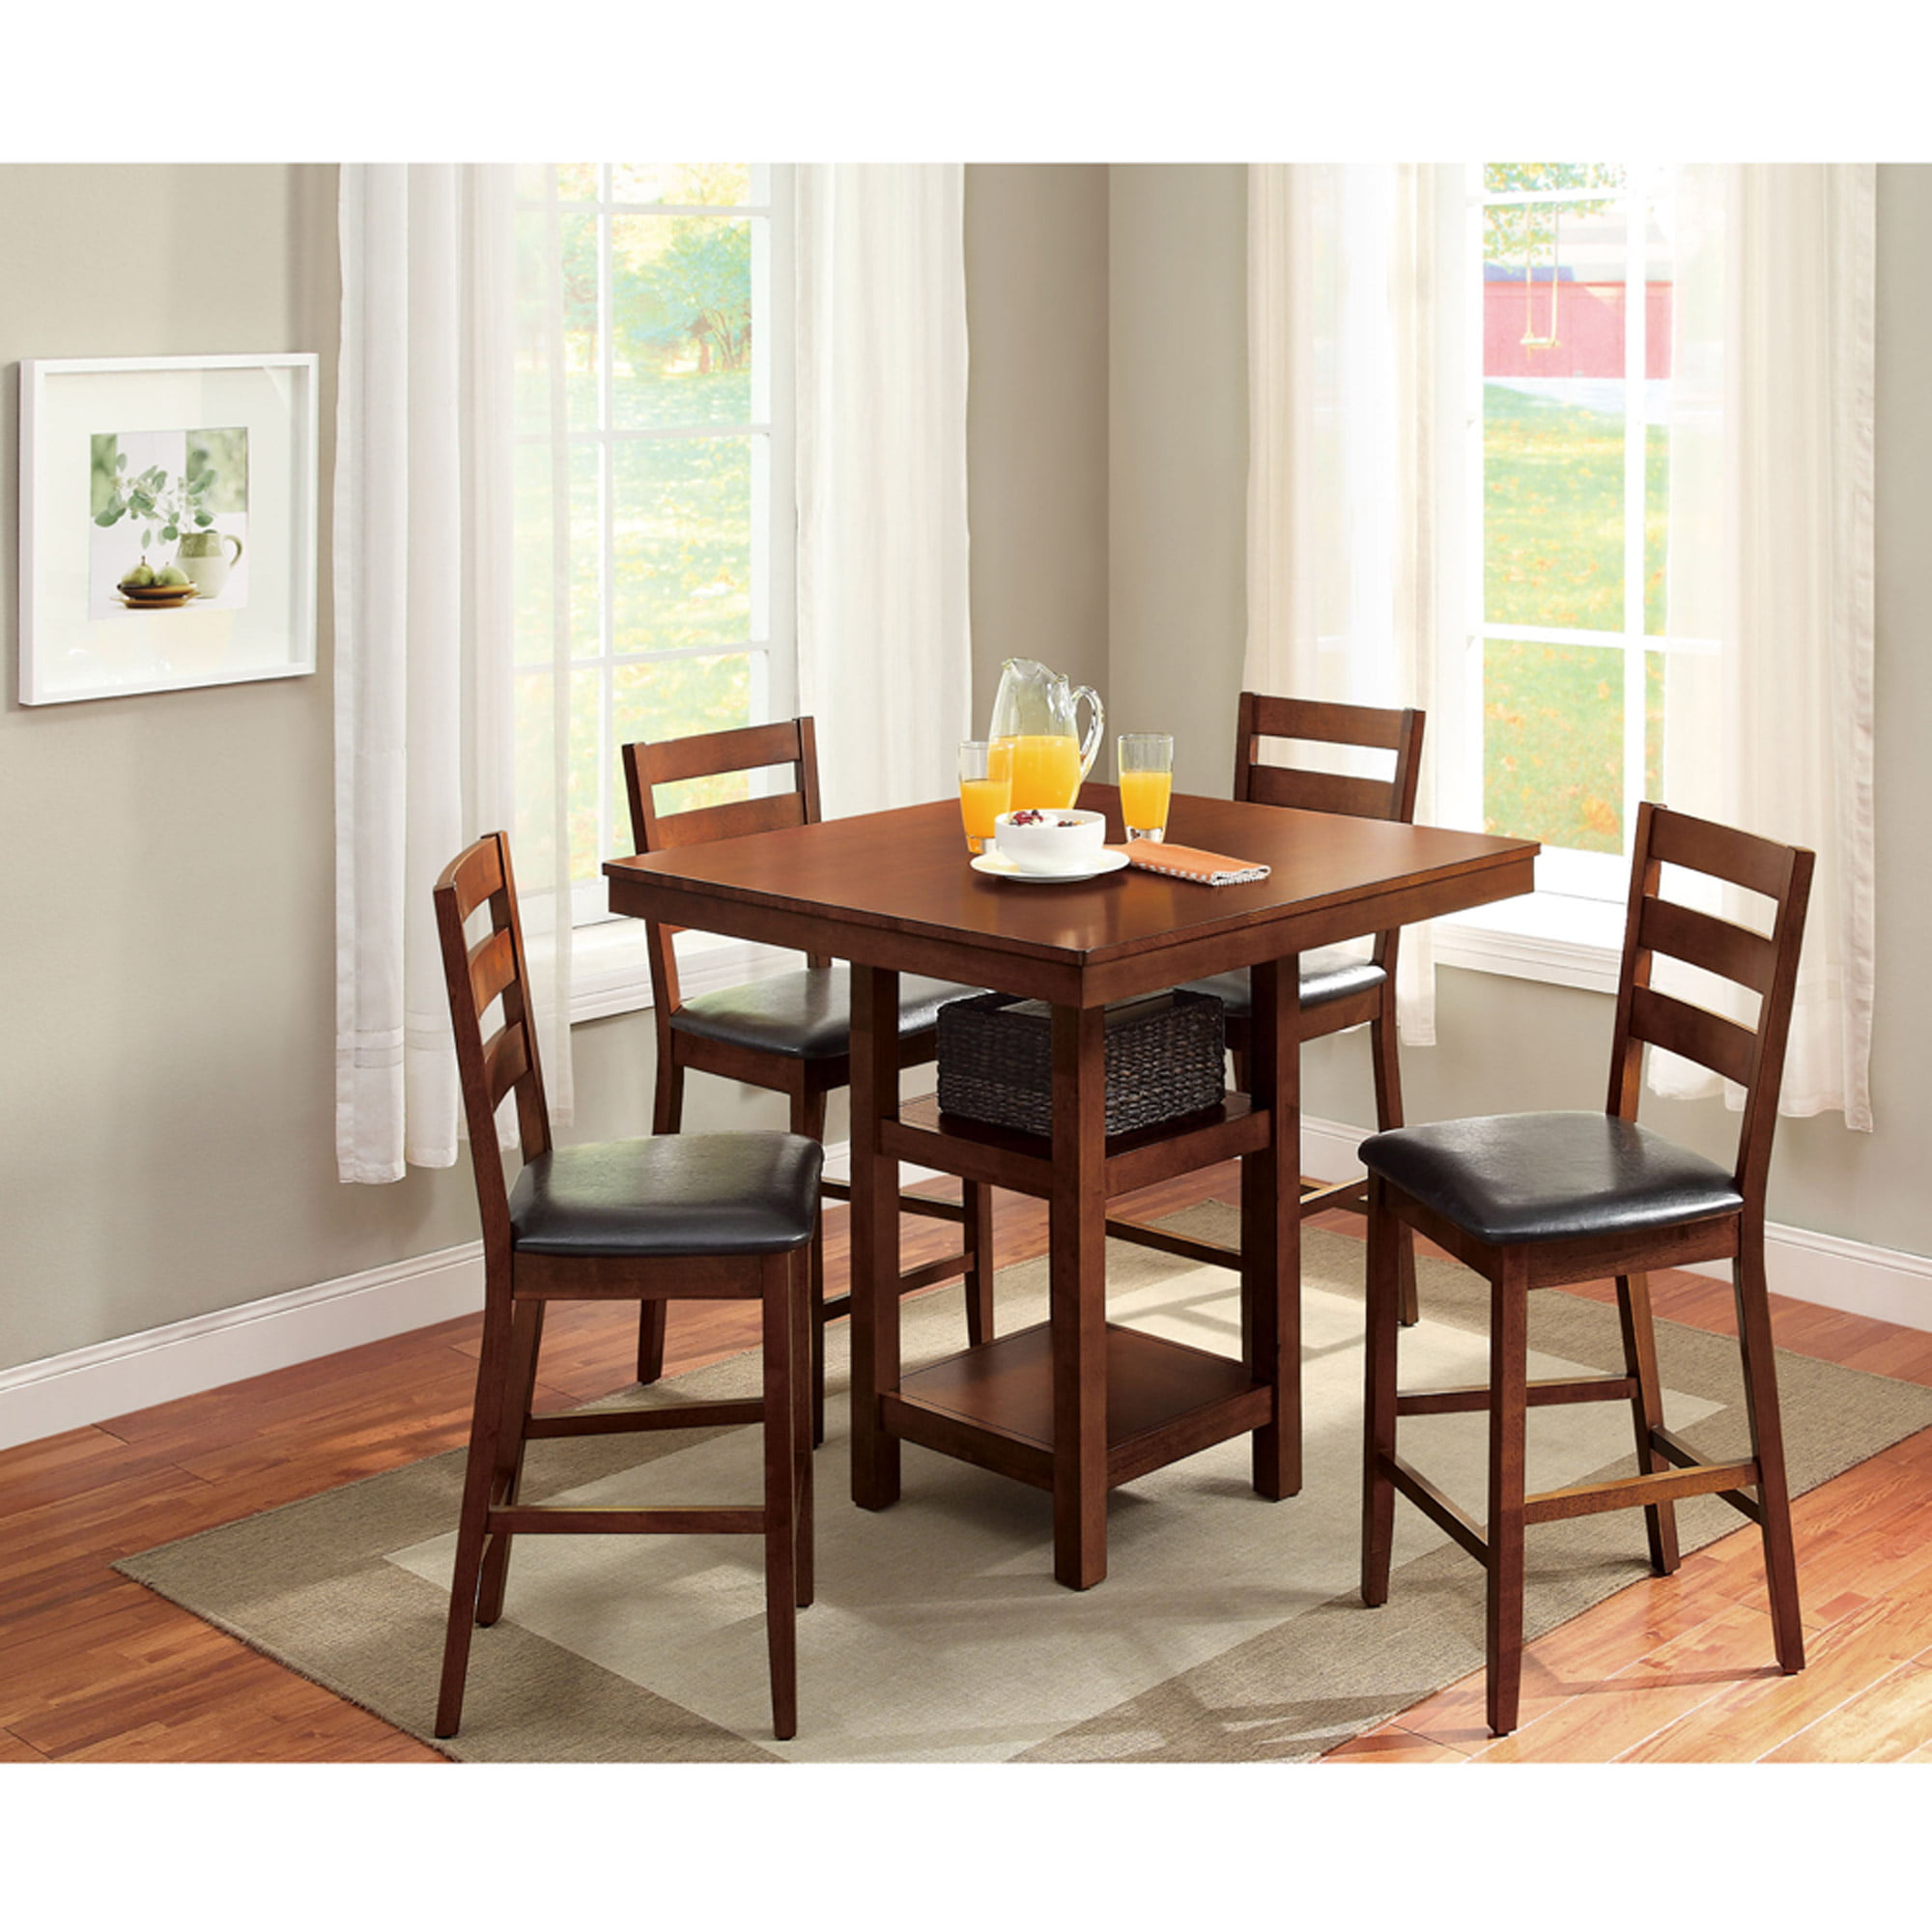 kitchen dining furniture walmartcom - Height Of Dining Room Table